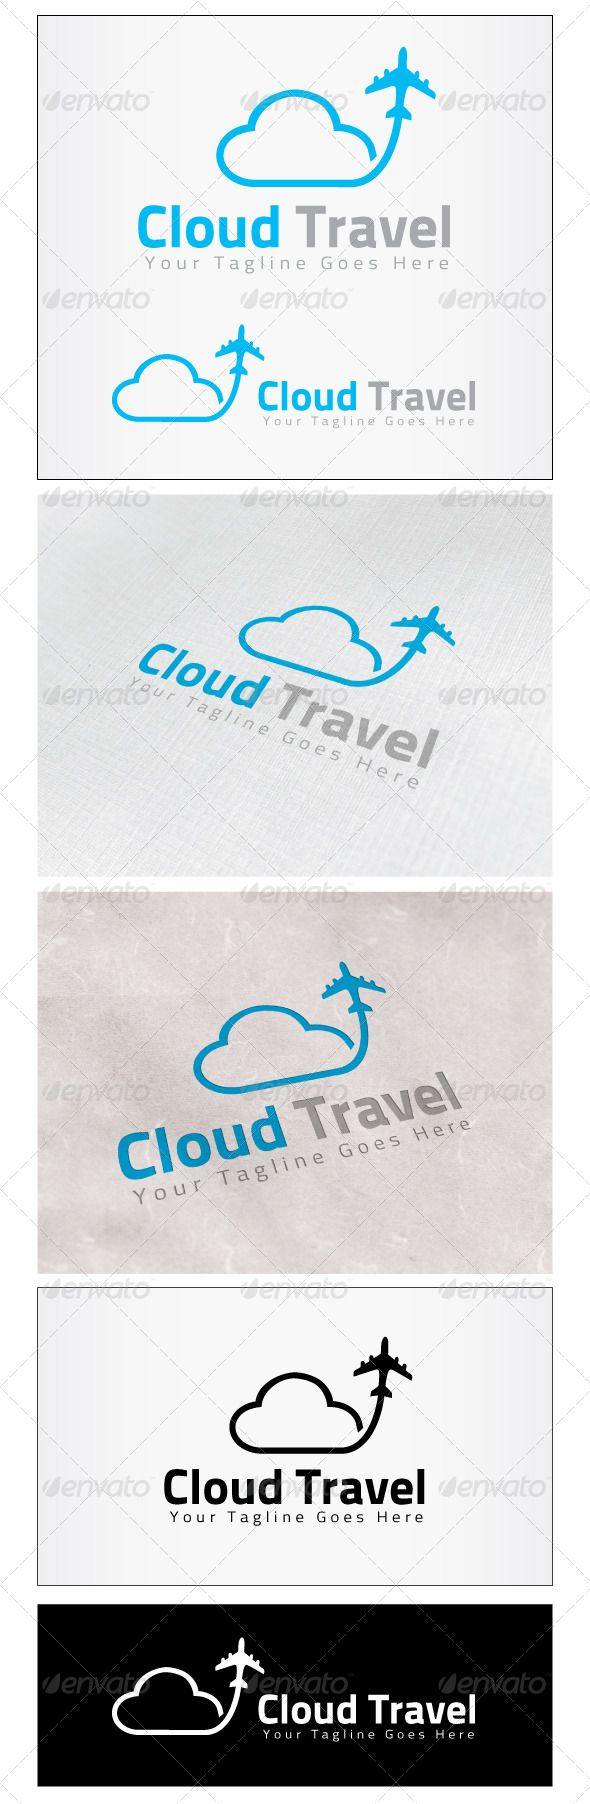 Cloud Travel Logo by himoo Re sizable Vector EPS and AiPSD 6667*5000 Color customizable Fully editable Free font used: http://www.fontsquirrel.com/fonts/Titi